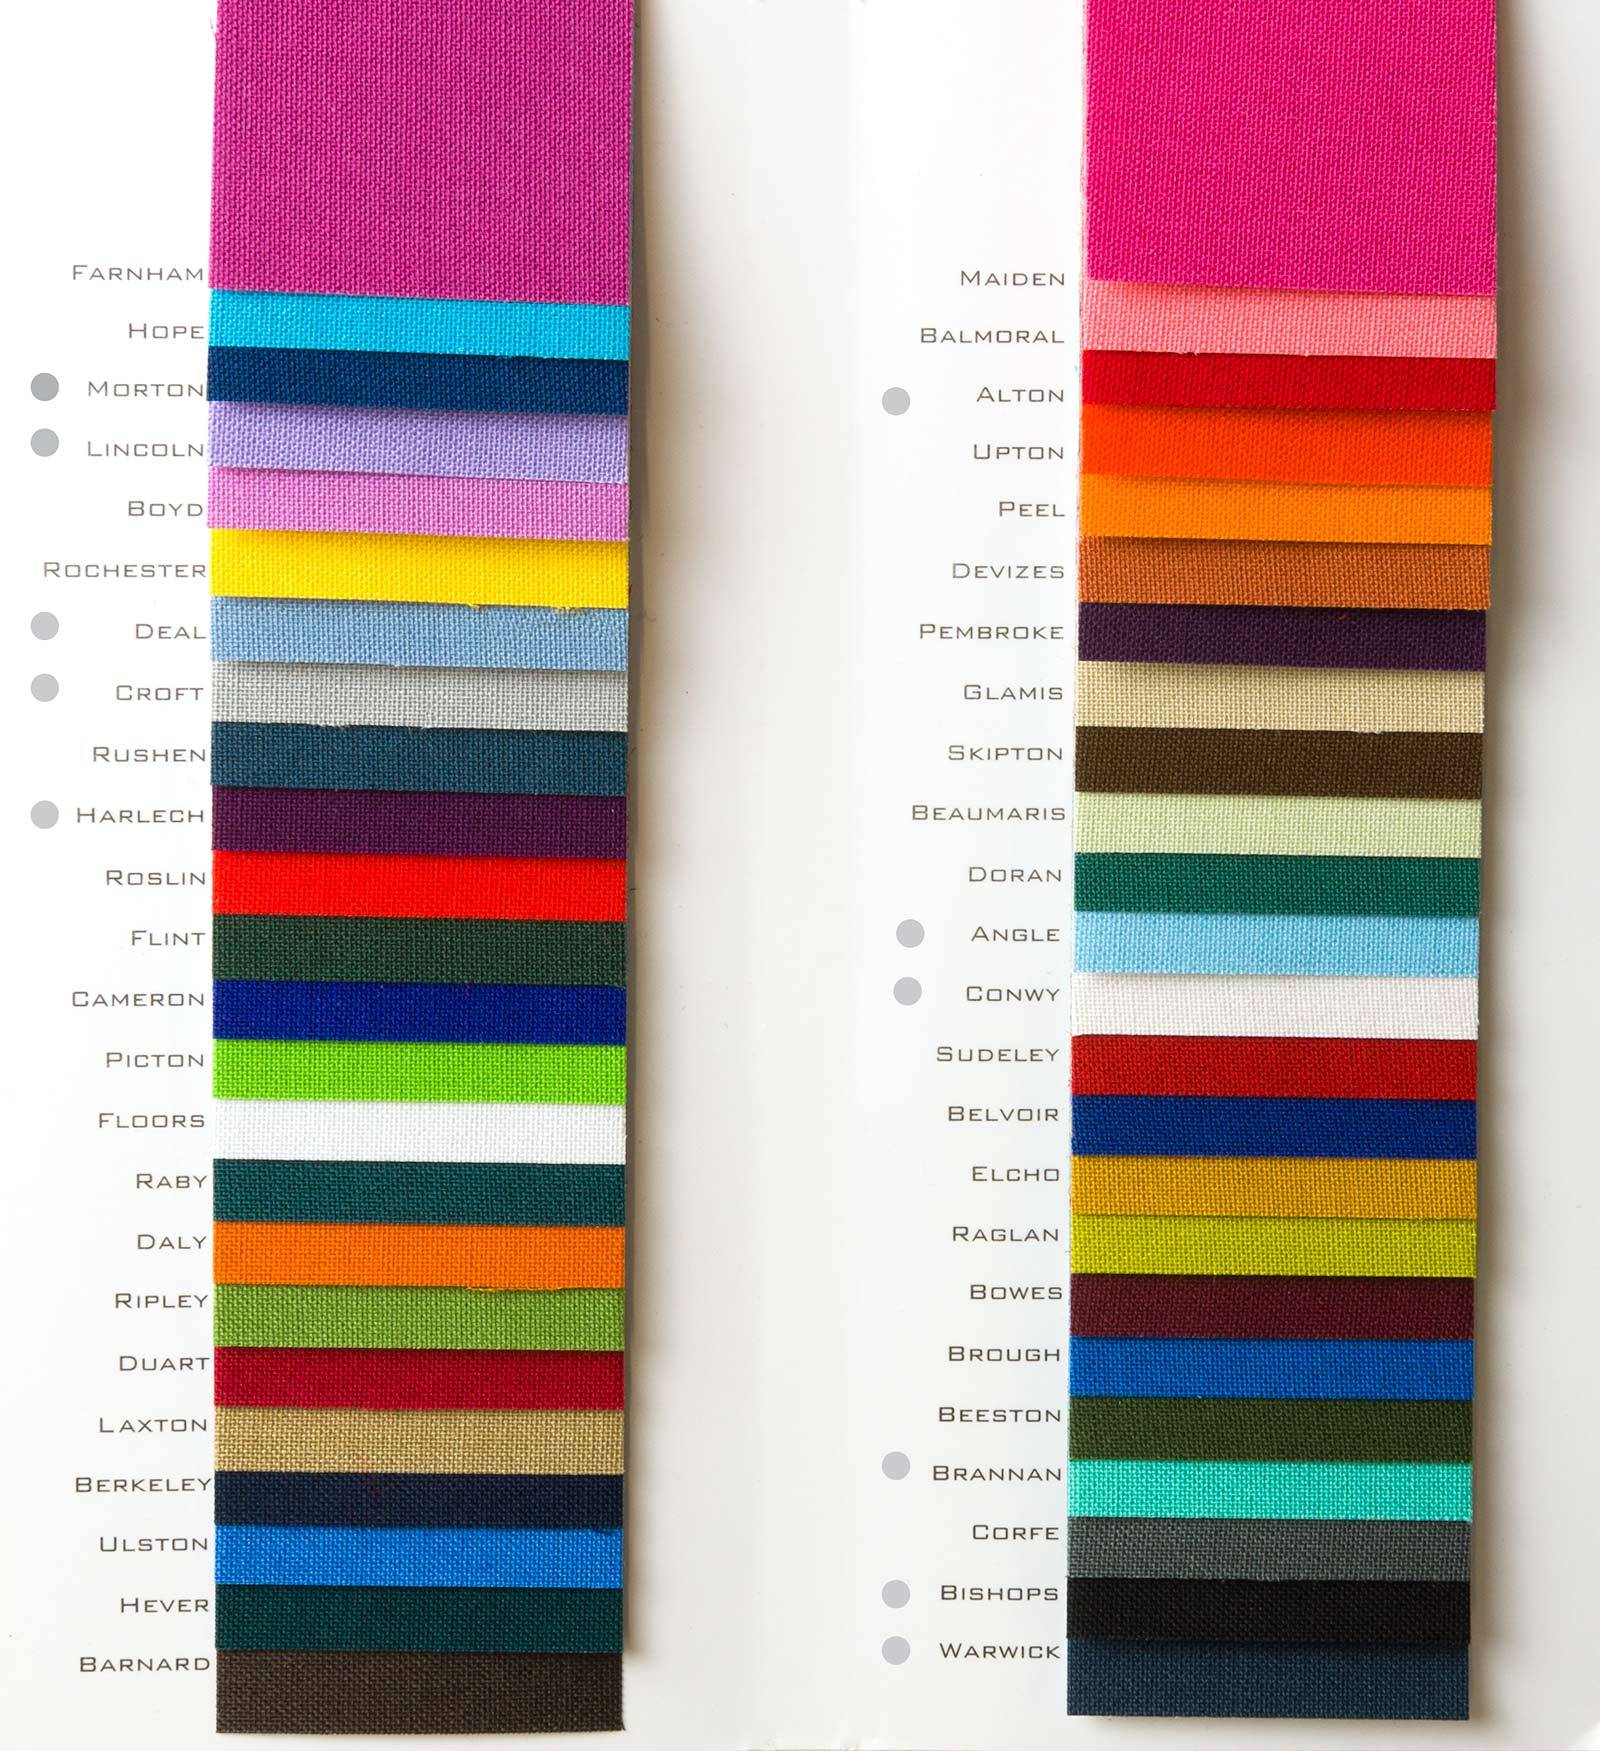 H&Co Windsor Fabric & Color Swatch for Bespoke Binders and Boxes